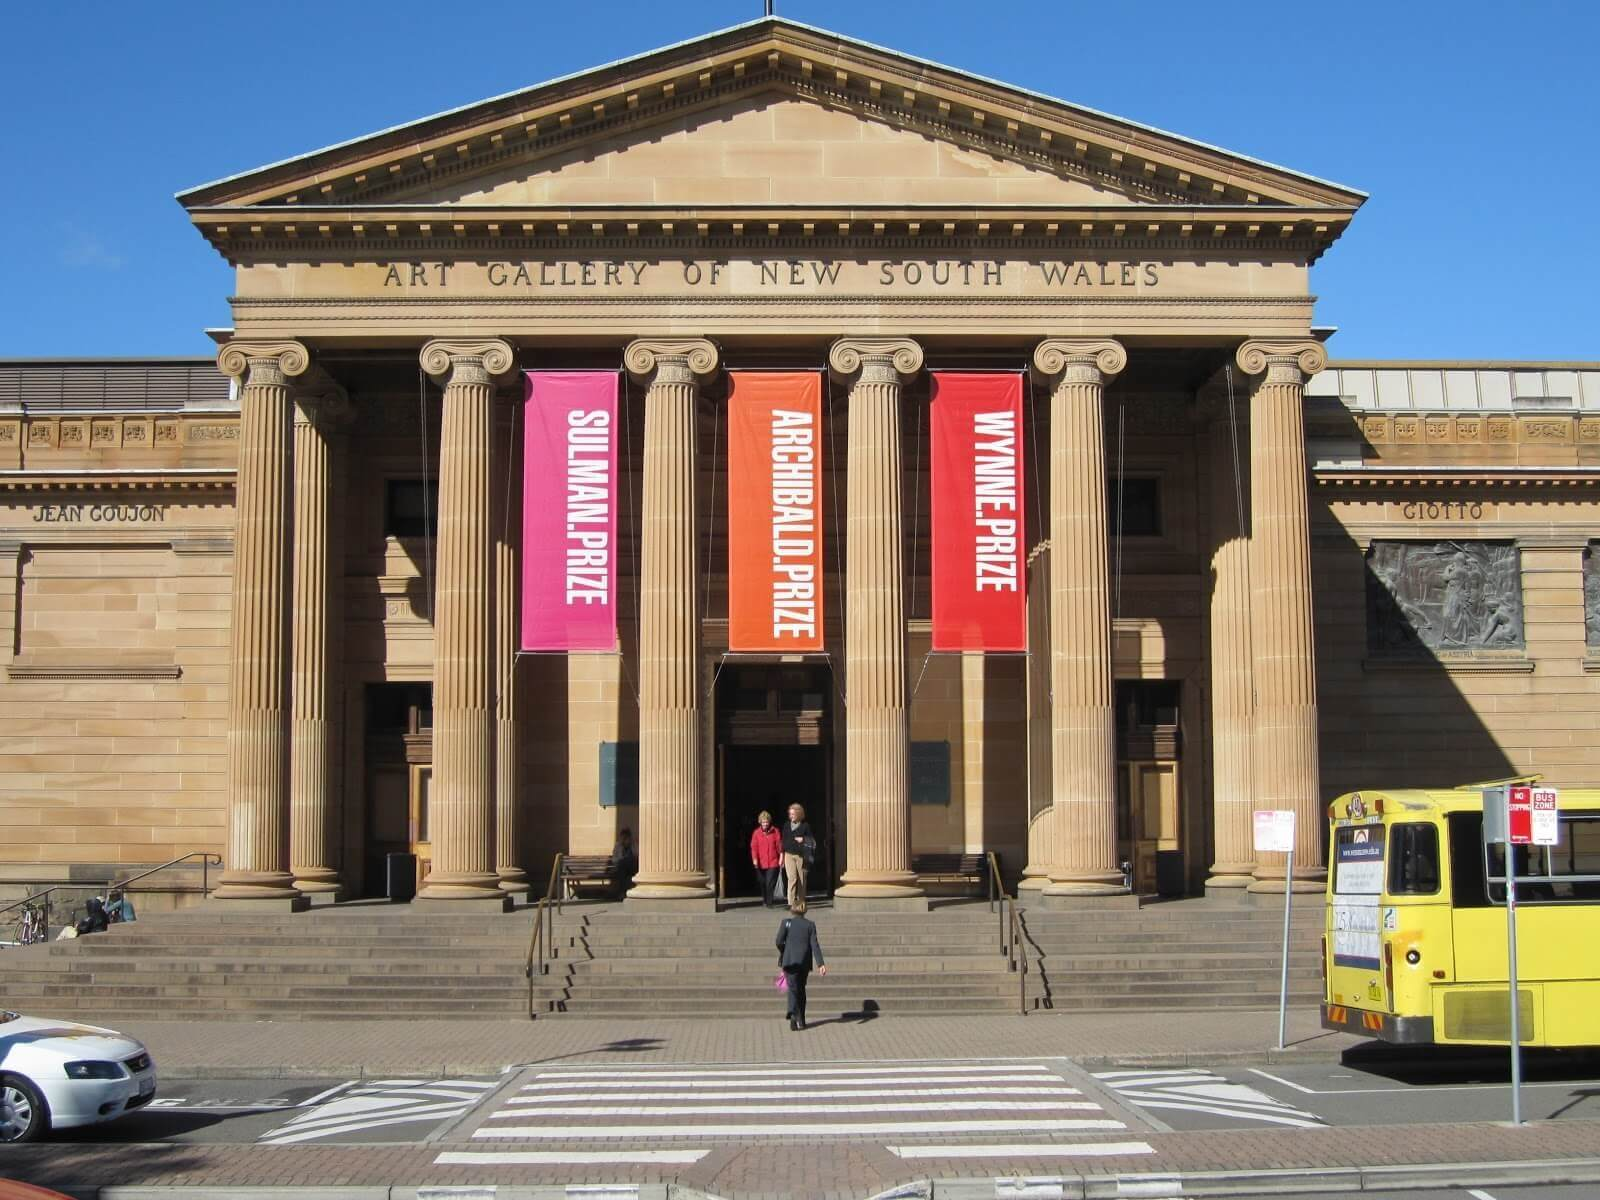 Tempat Wisata Sydney Australia - Art Gallery of New South Wales